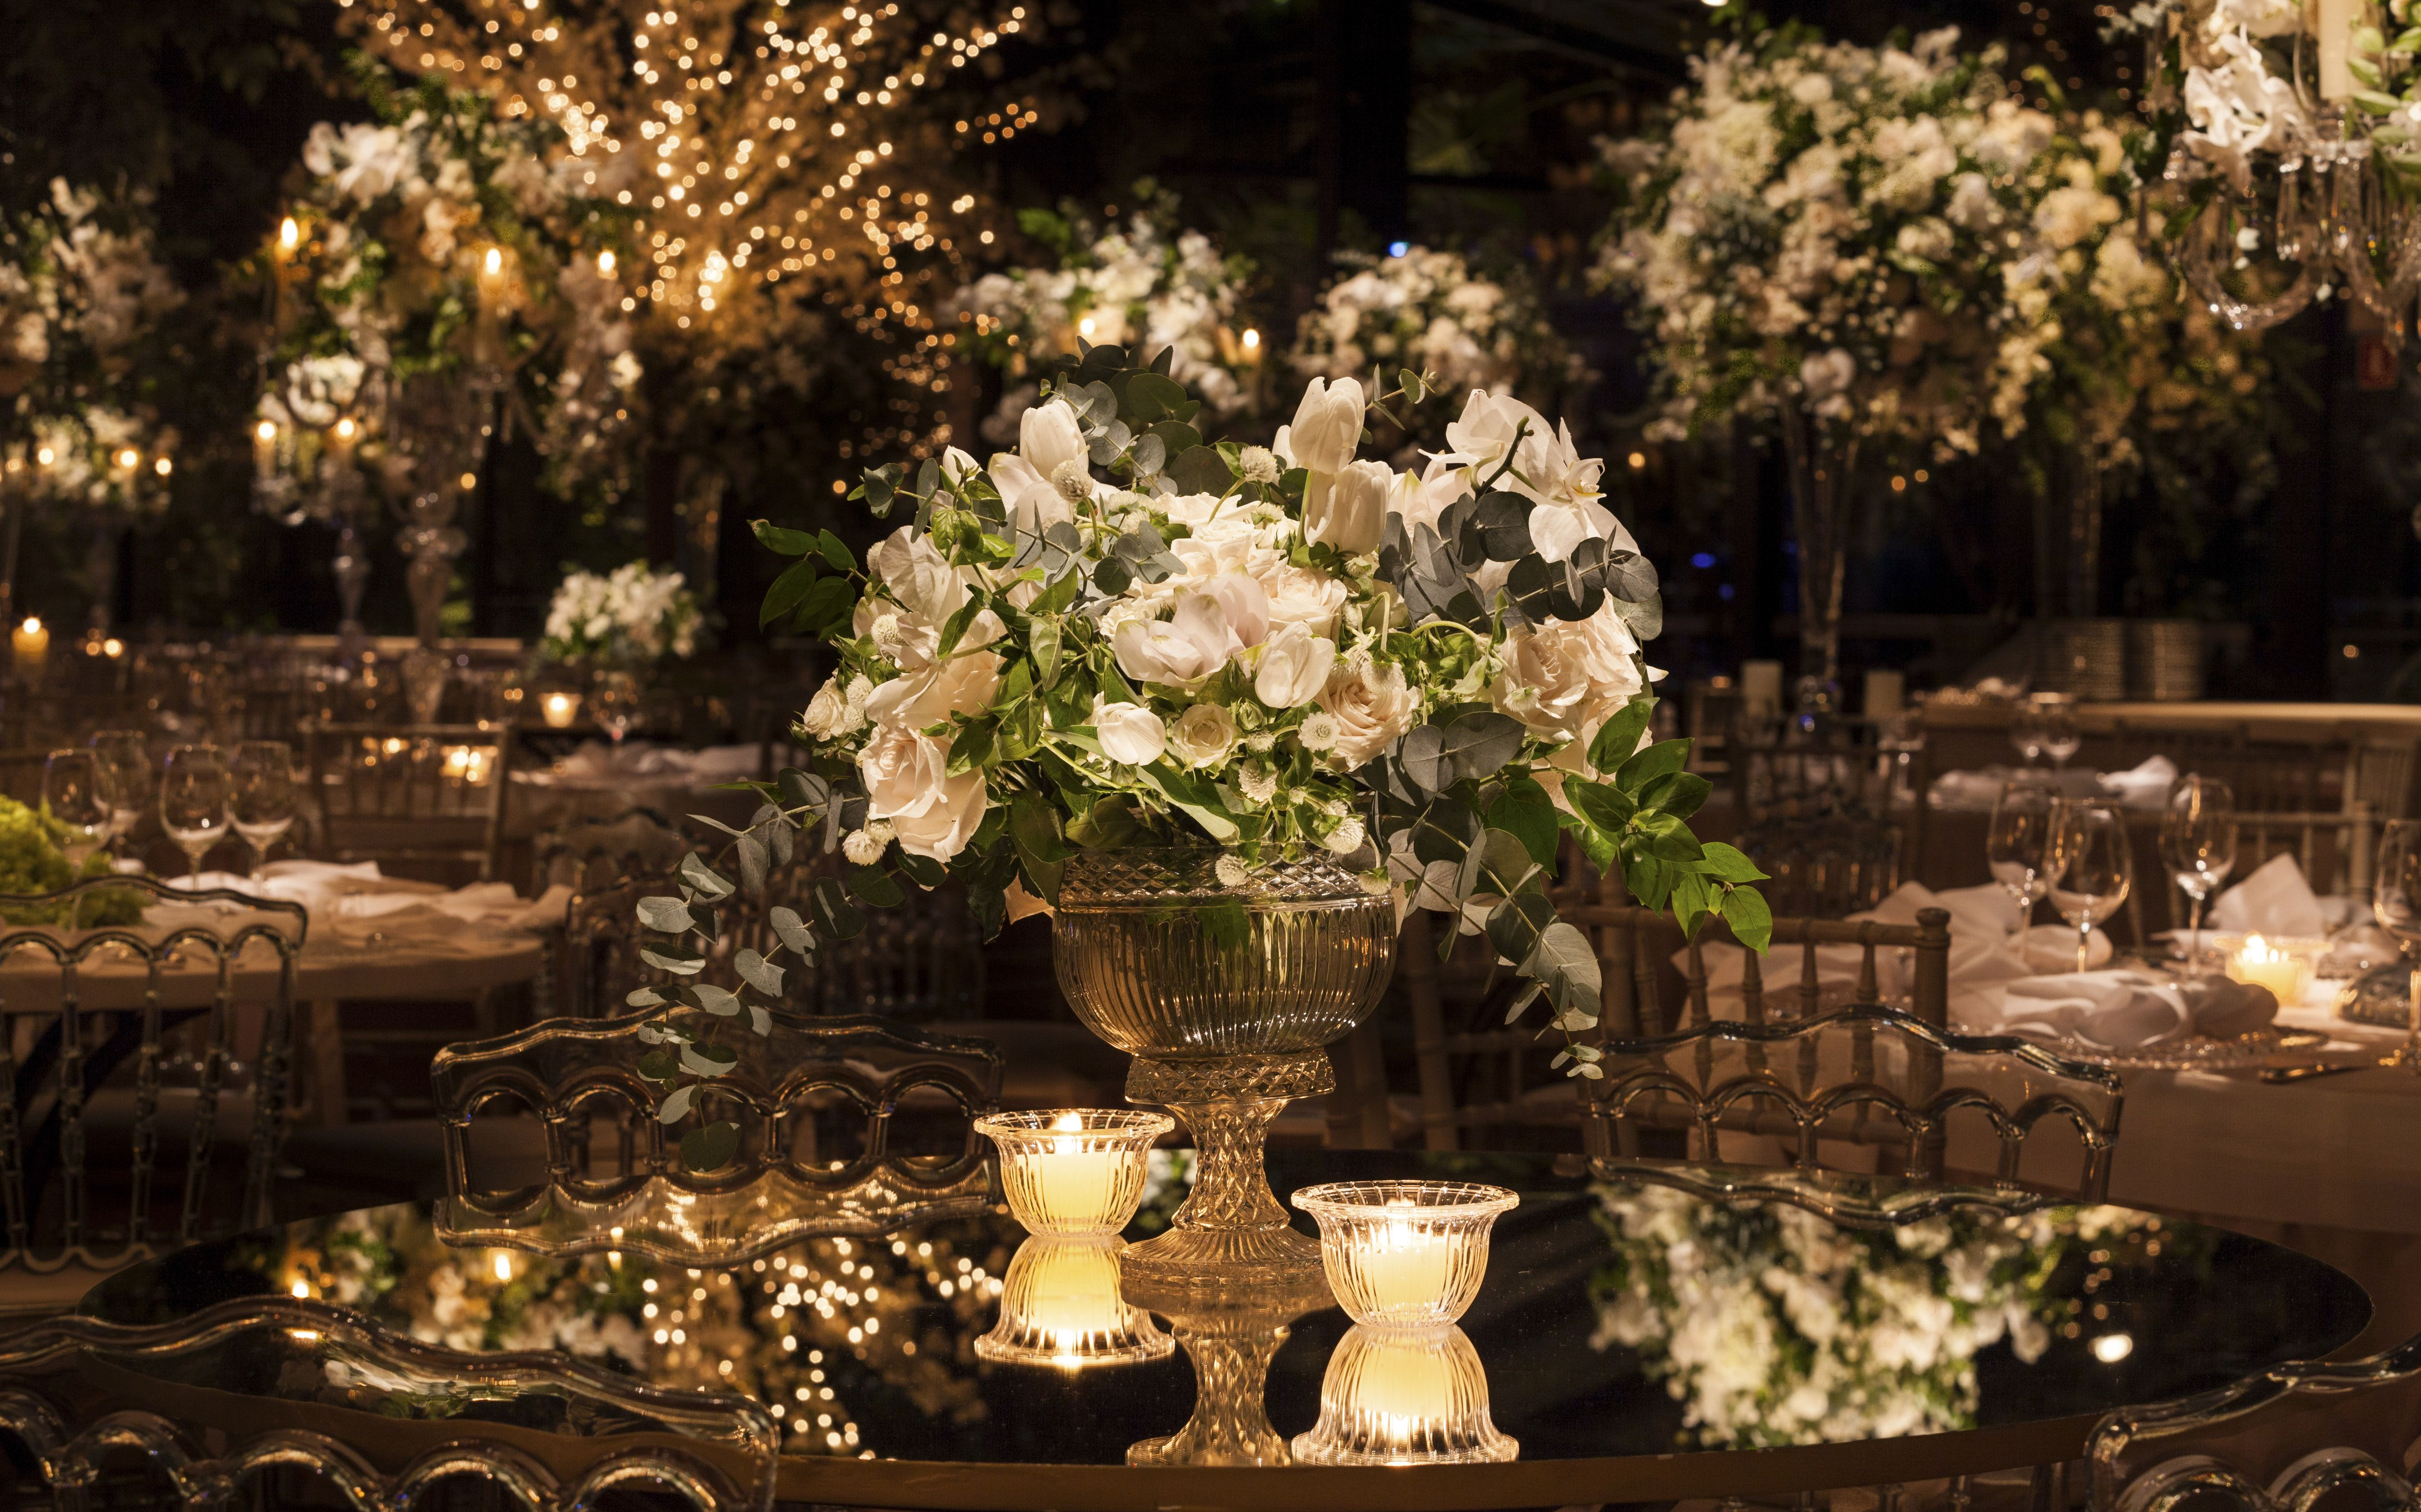 Decorated Tables Wedding Decorated With Mirror Table Top White Flowers And Candles